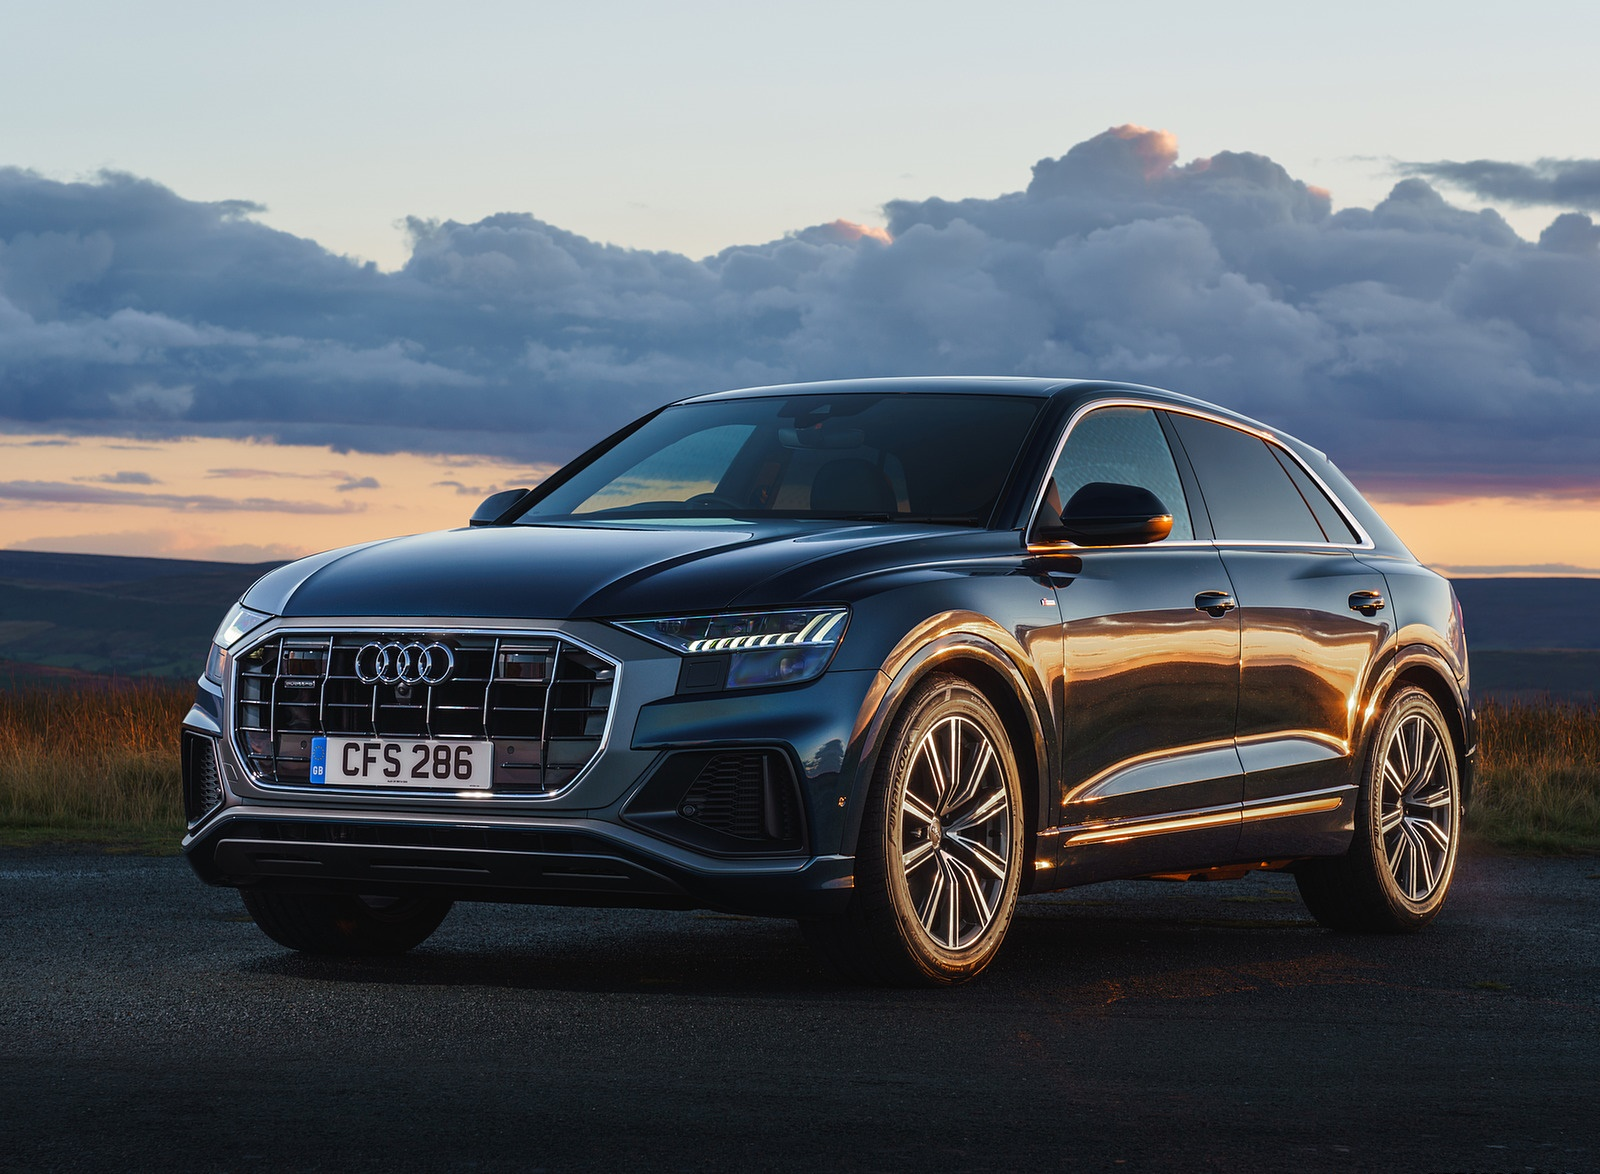 2019 Audi Q8 S Line 50 TDI Quattro (UK-Spec) Front Three-Quarter Wallpaper (10)